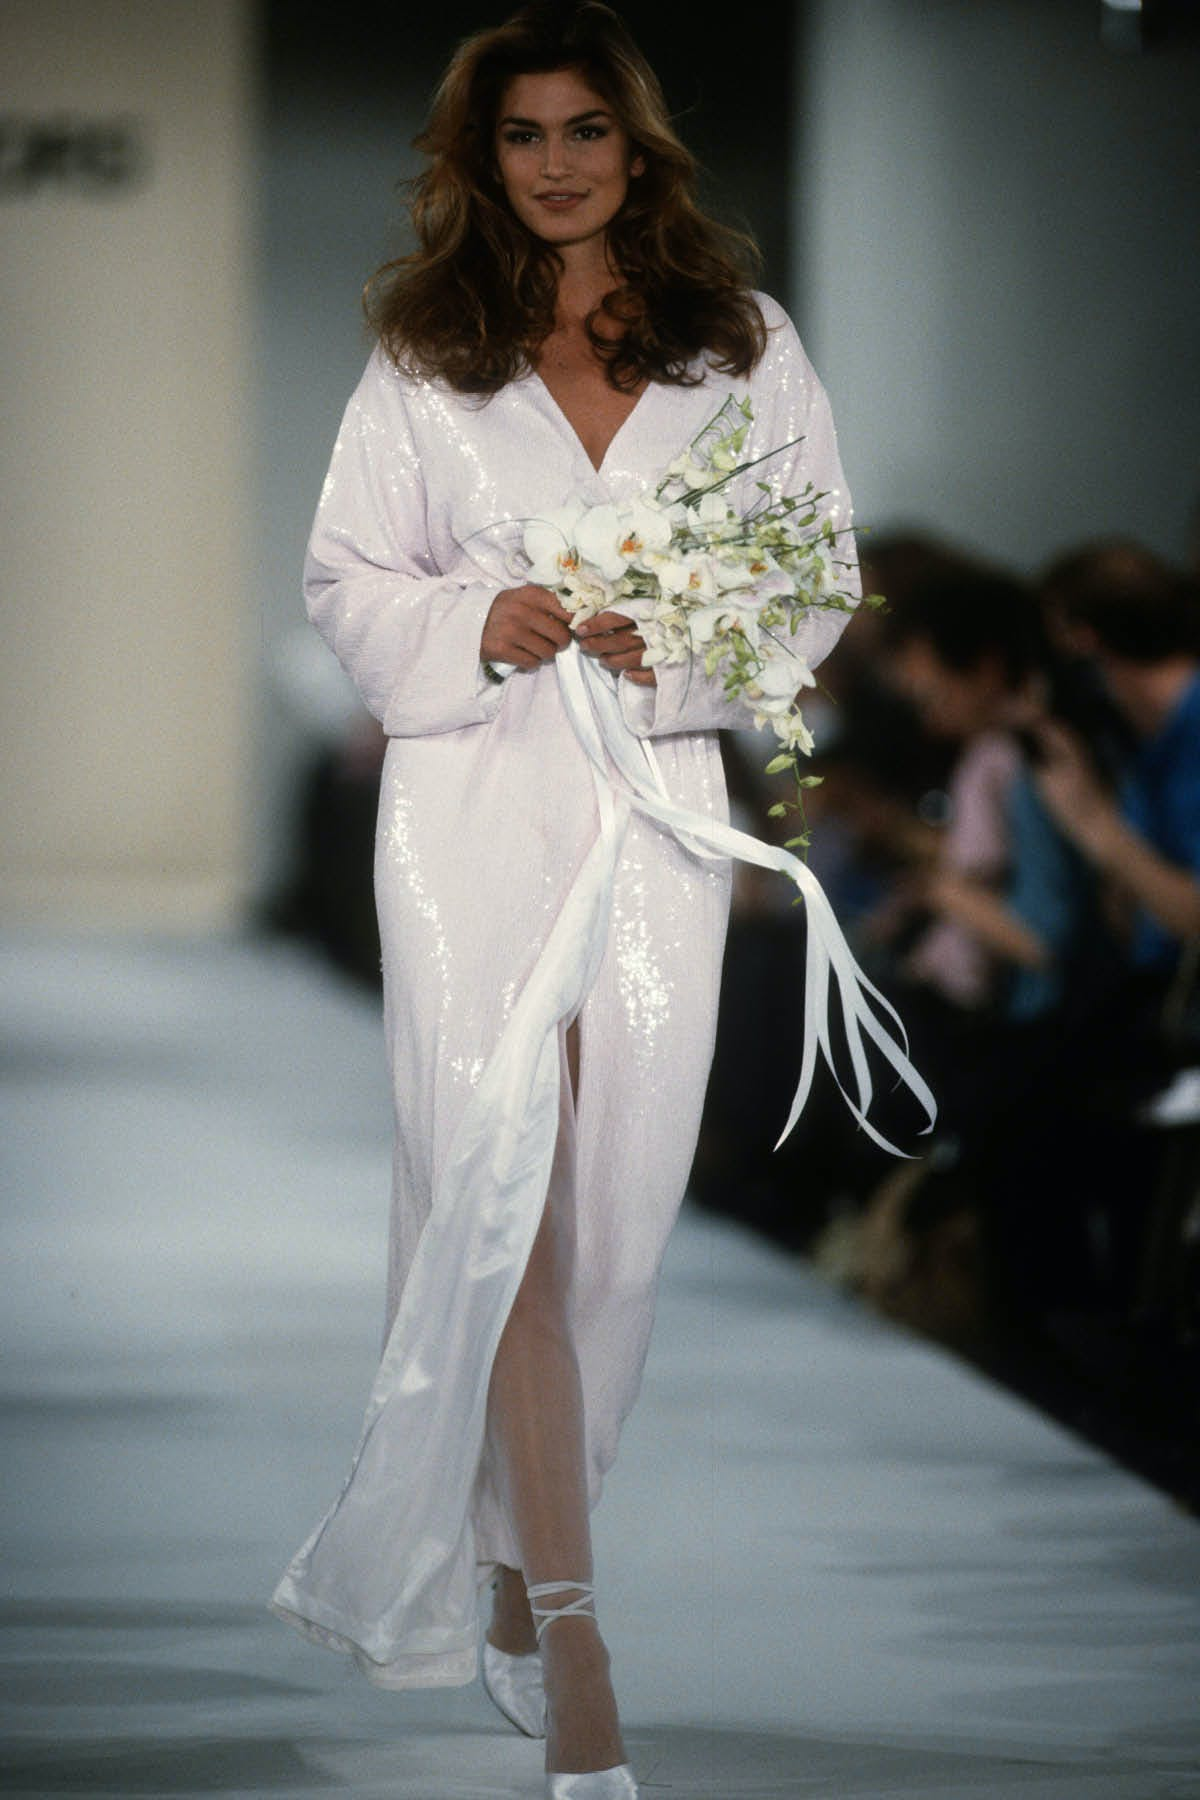 WHITE KIMONO GOWN WITH PAILLETTE HAND EMBROIDERY